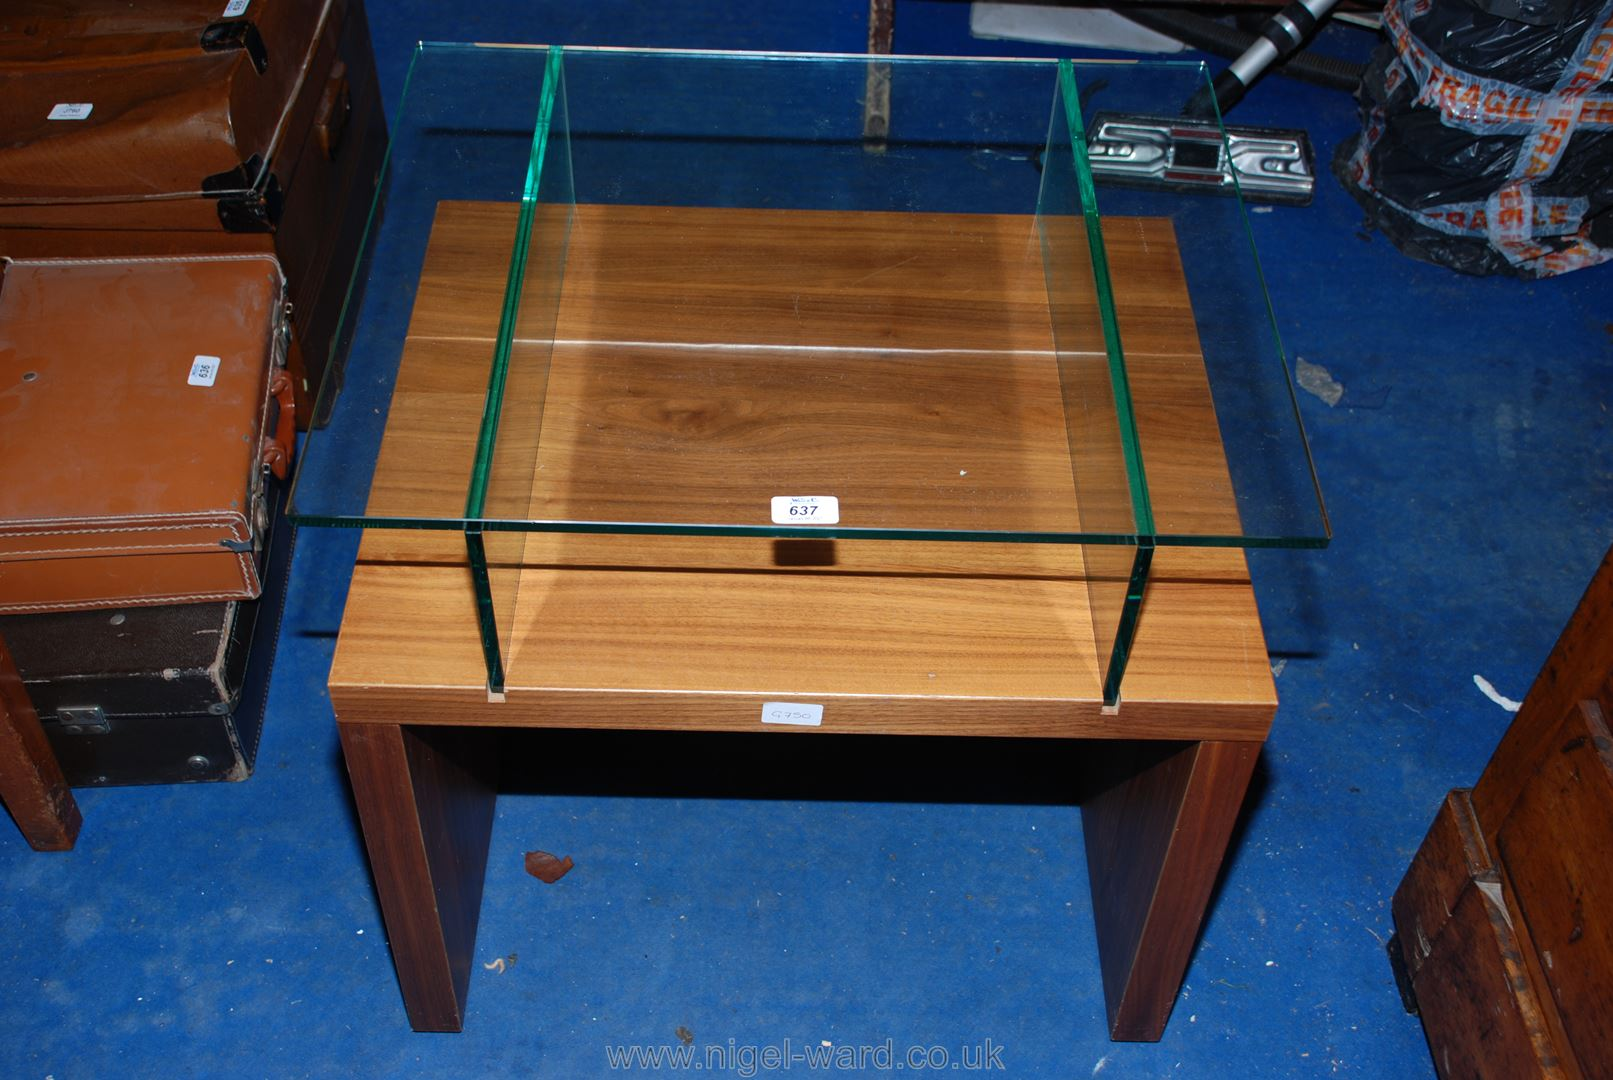 """A stylish glass-topped, wooden-based TV stand 24"""" x 24"""" x 20""""."""